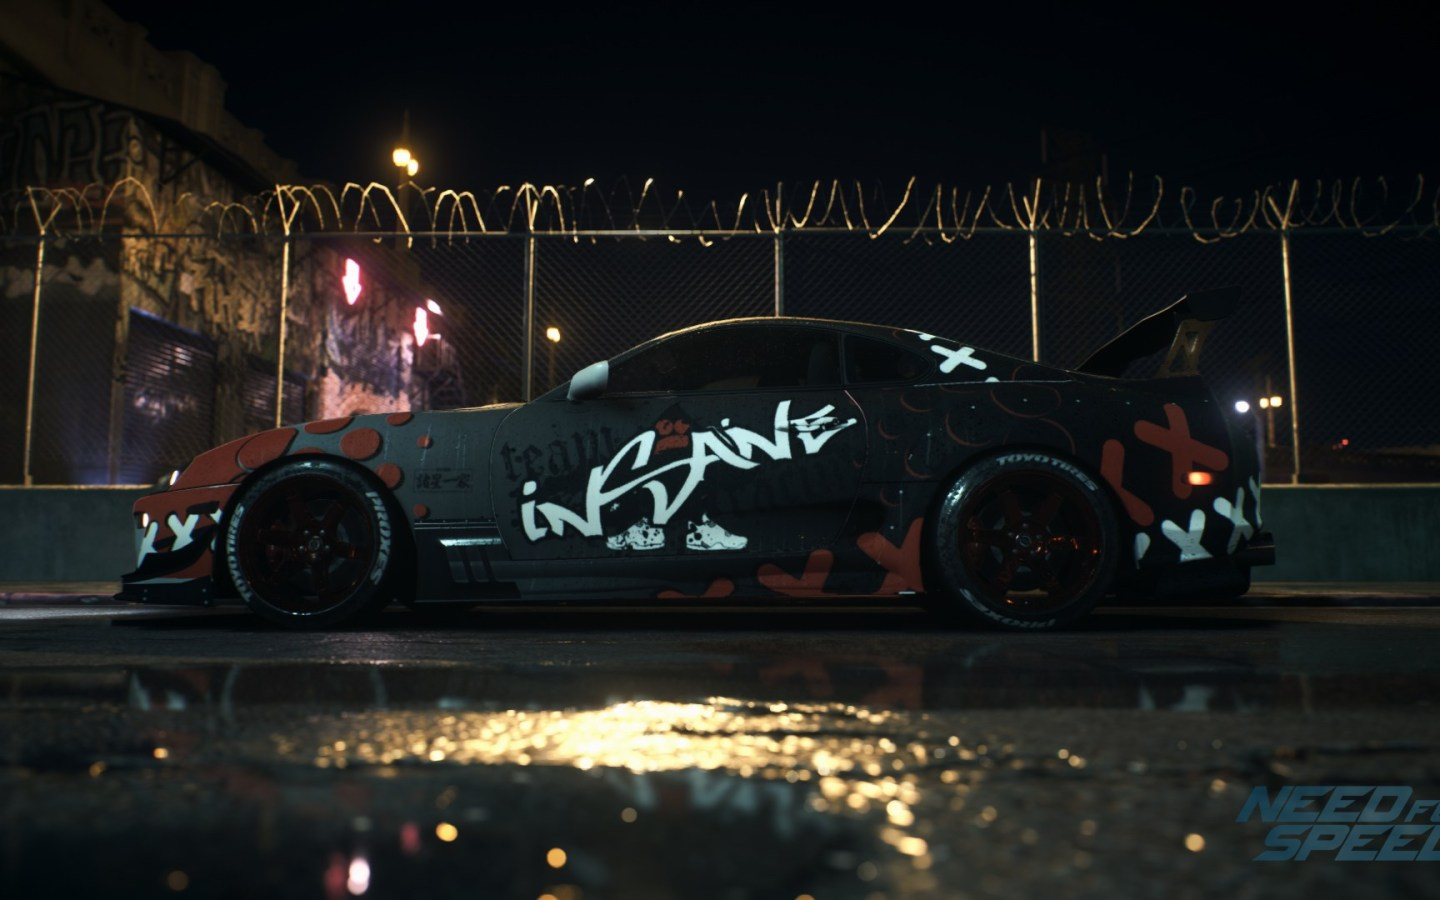 Need for Speed HD Wallpaper Background 25849 Wallur 1440x900